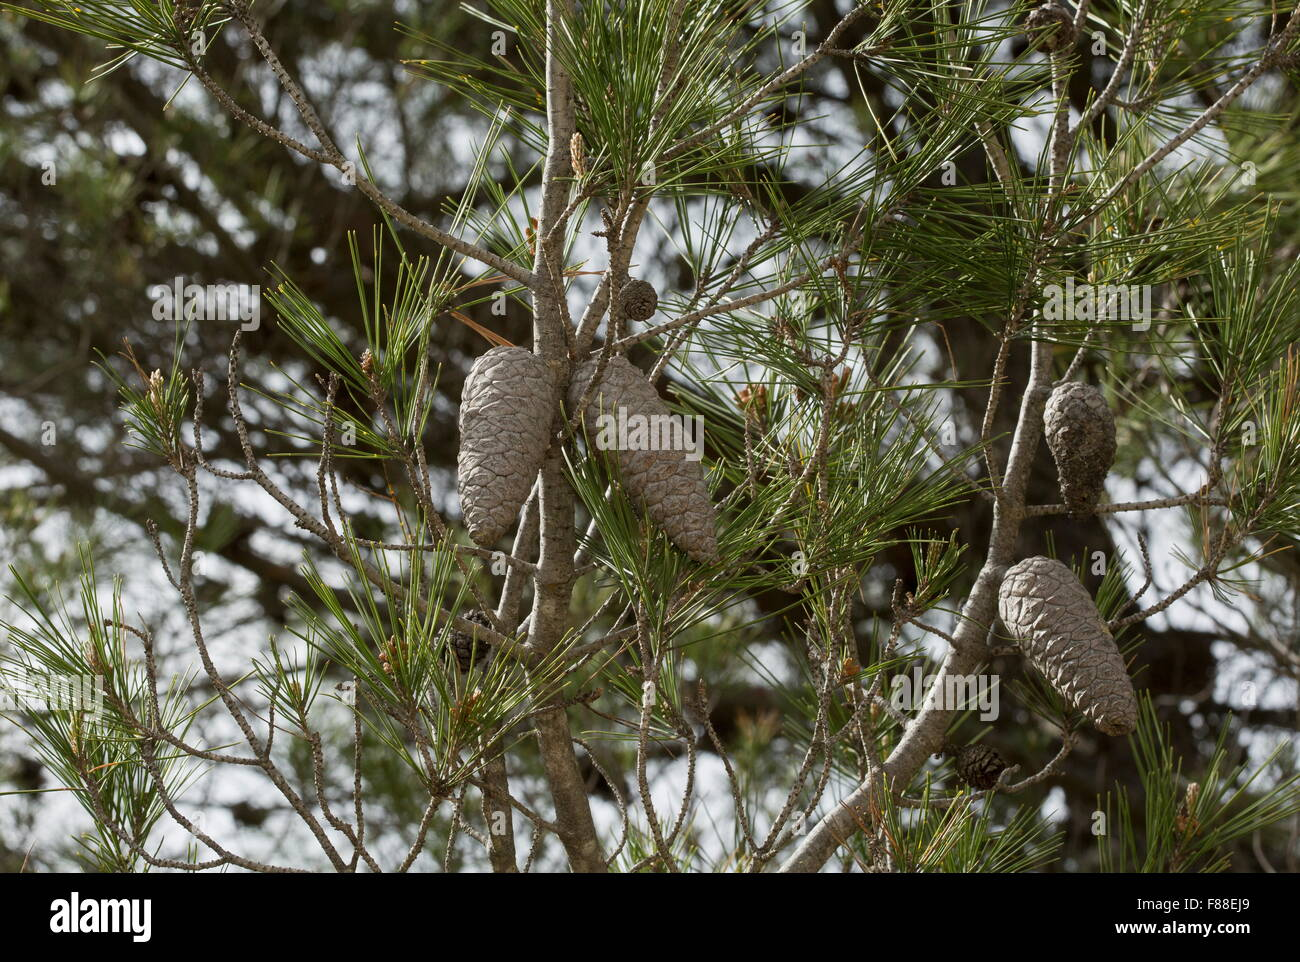 Cones of Aleppo pine, Pinus halepensis, south-west Spain. - Stock Image